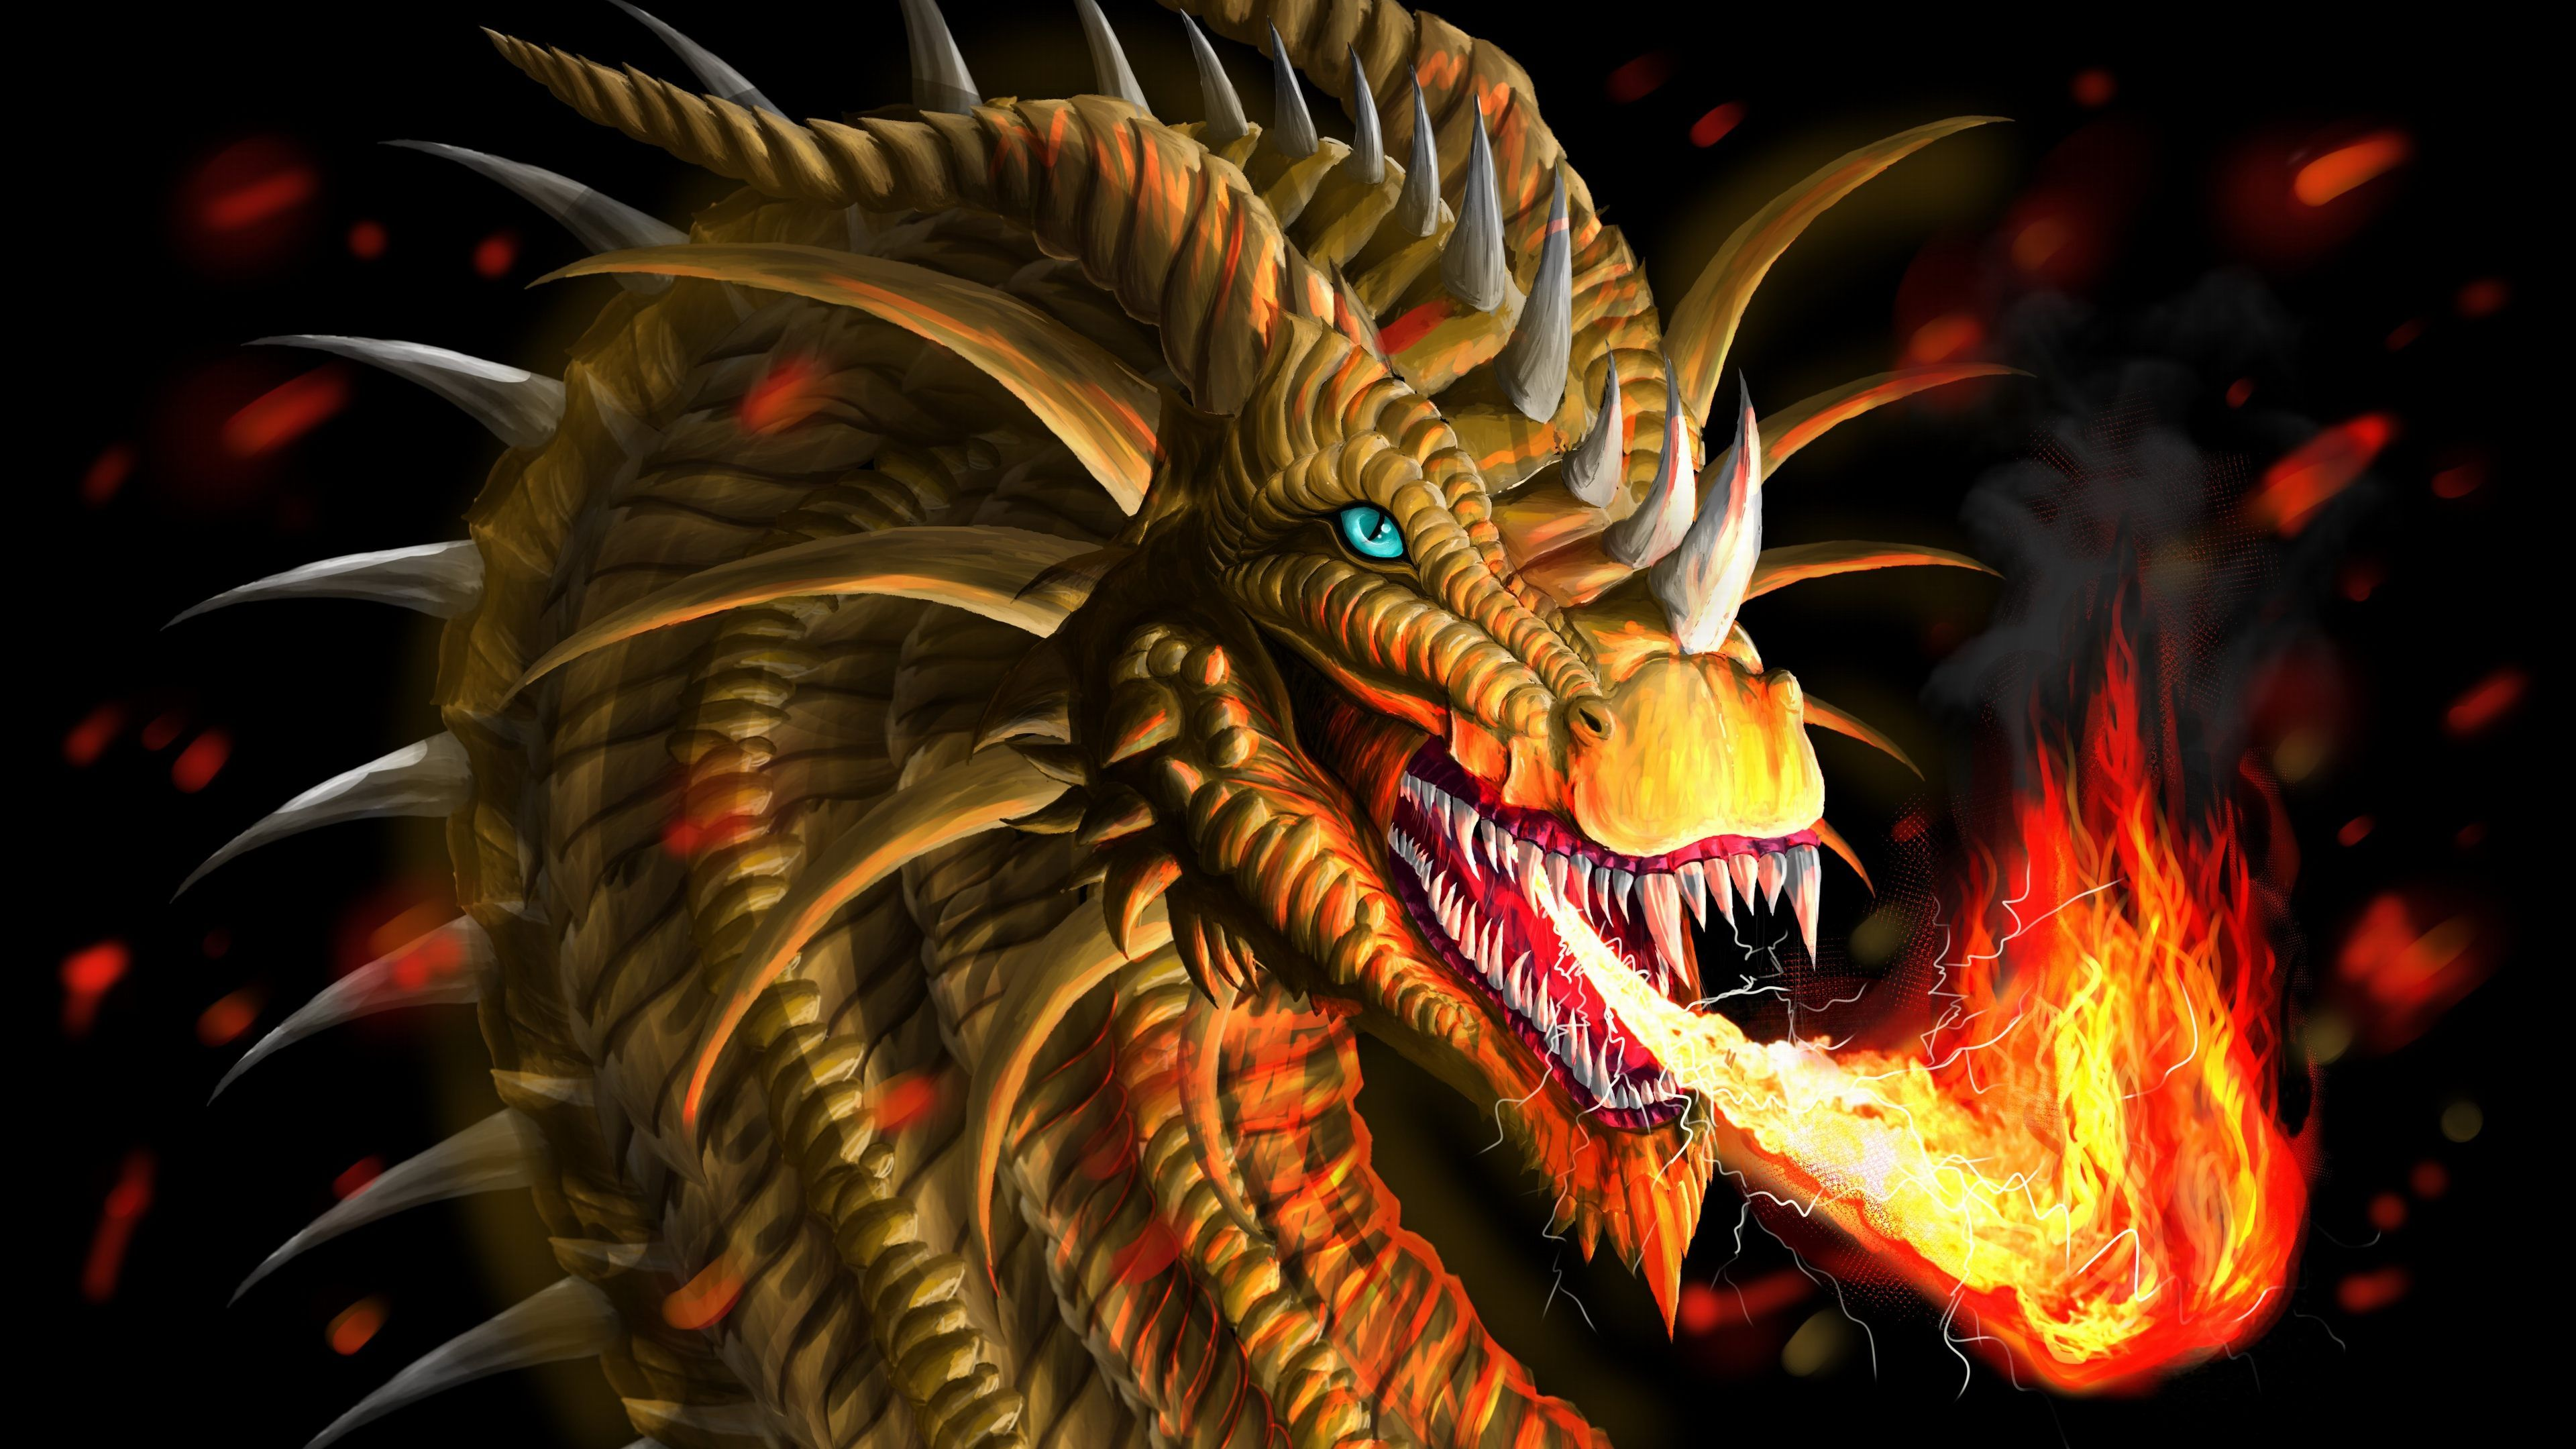 Fire Dragon Wallpapers Wallpaper Cave I Luv Dragons